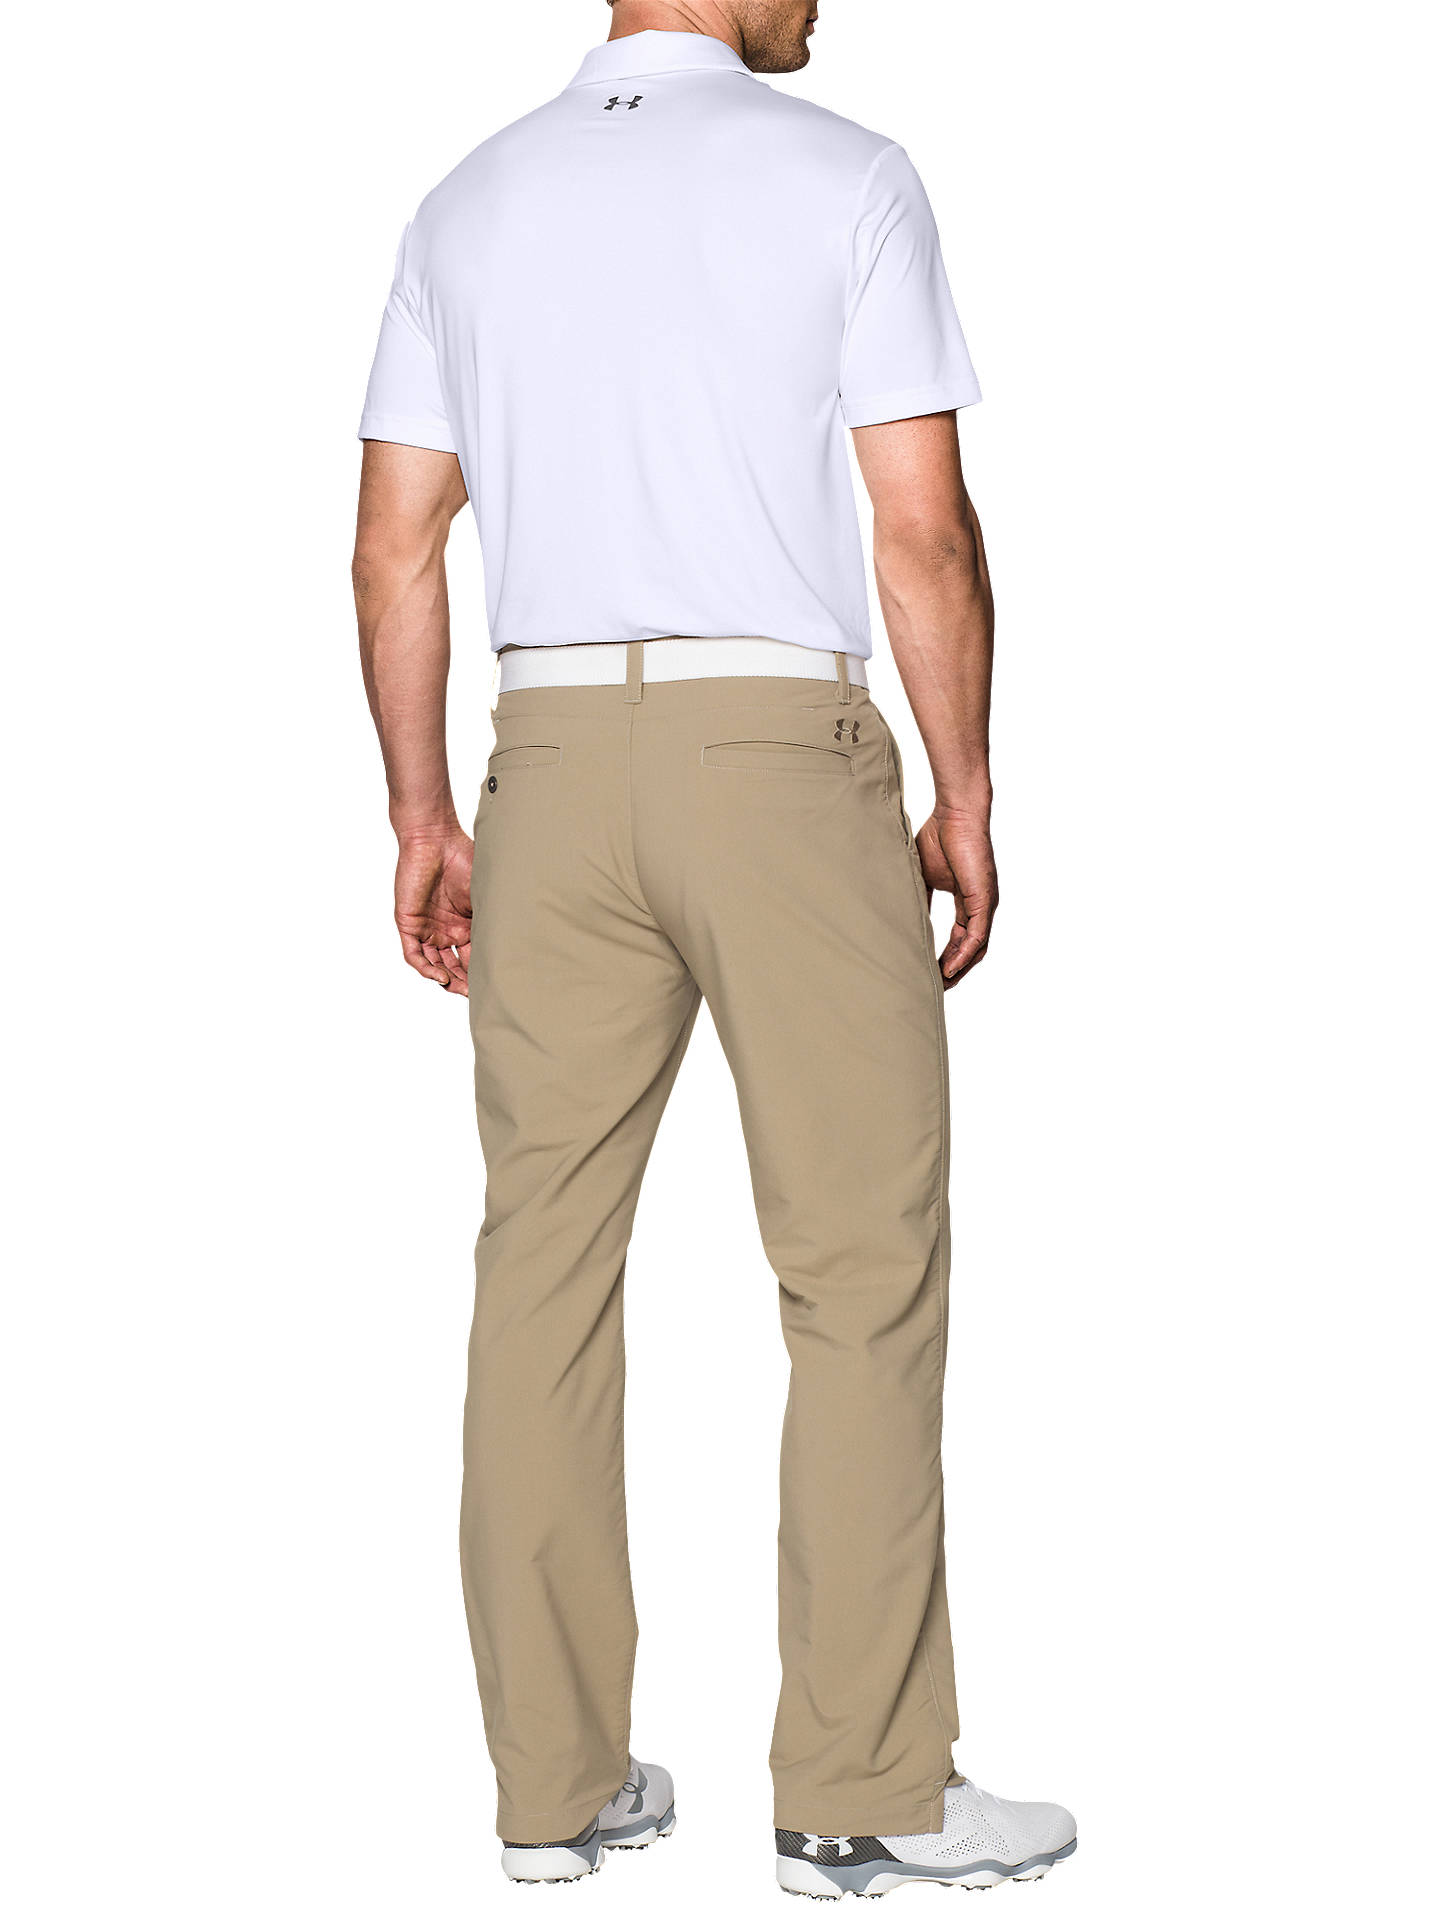 BuyUnder Armour Playoff Golf Polo Shirt, White, S Online at johnlewis.com